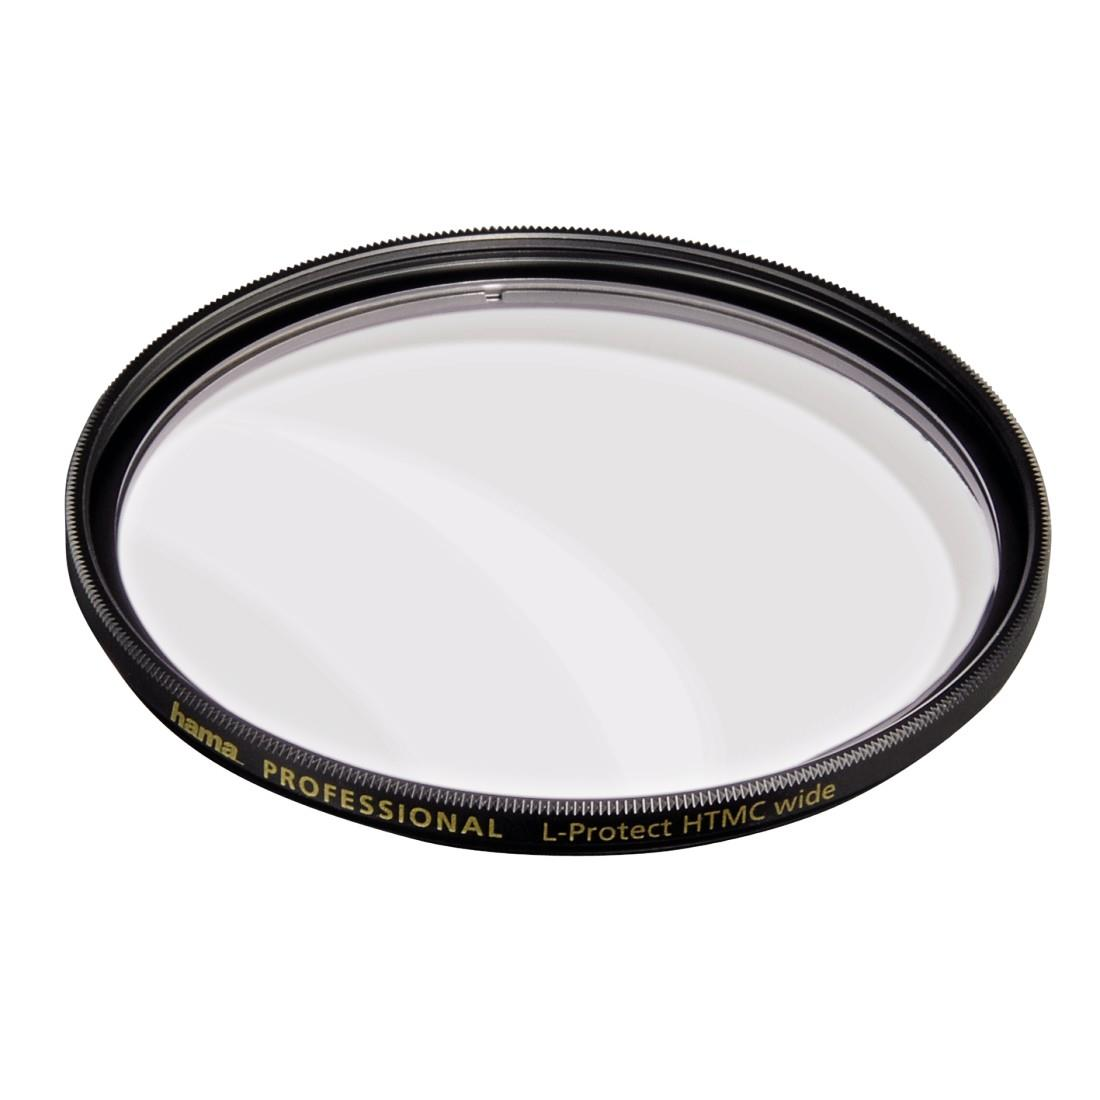 Hama L-Protect-Filter 77 mm Professional HTMC multi-coated Wide